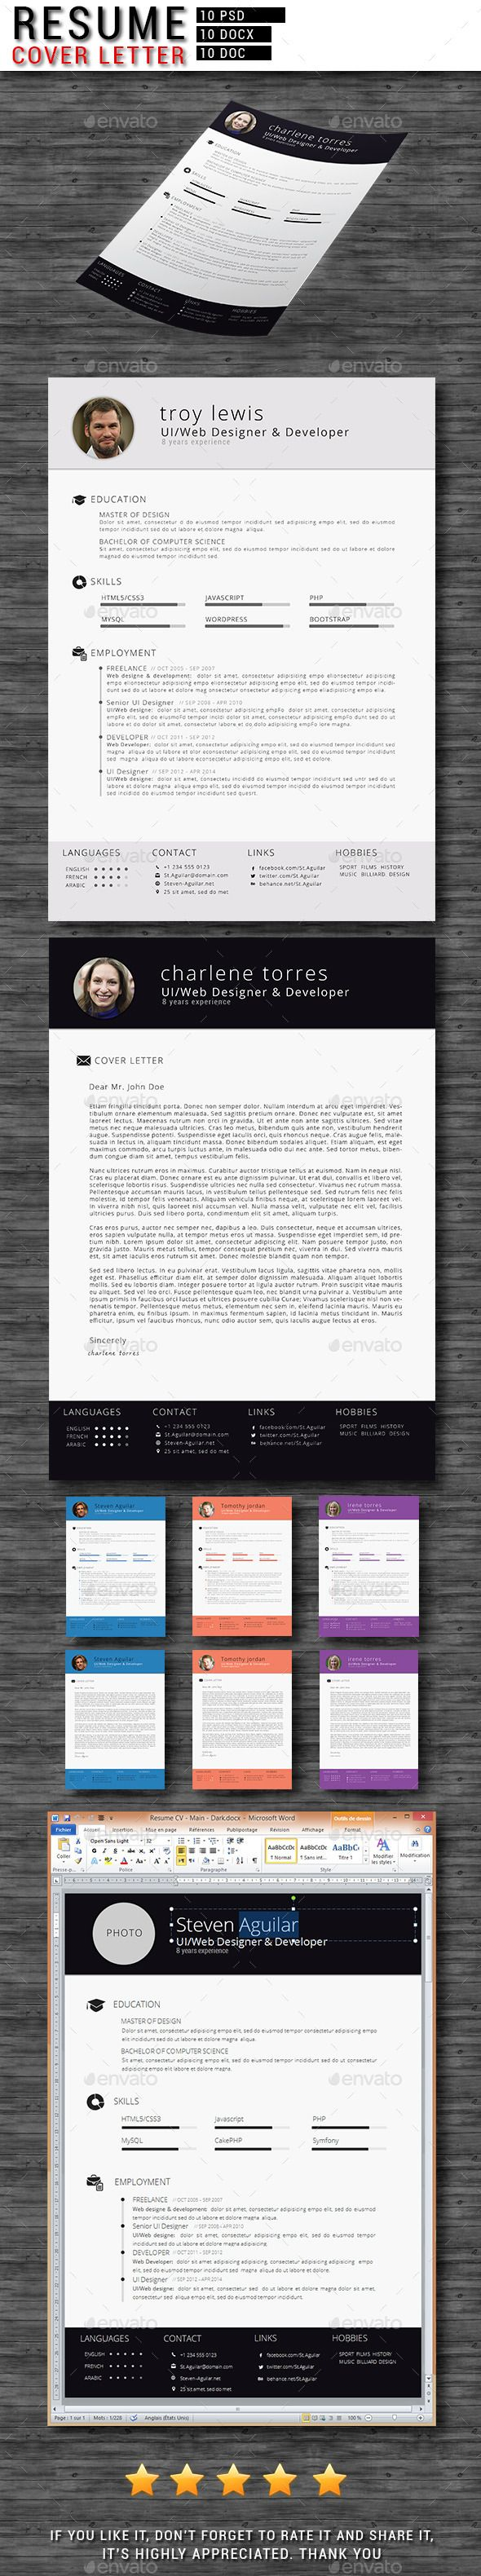 Resume Best Font Word  Best Images About Resume Templates Microsoft Word On  Cashier Duties On Resume Excel with Resume Setup Example Pdf Cvresume  Cover Letter How Do I Do A Resume Word